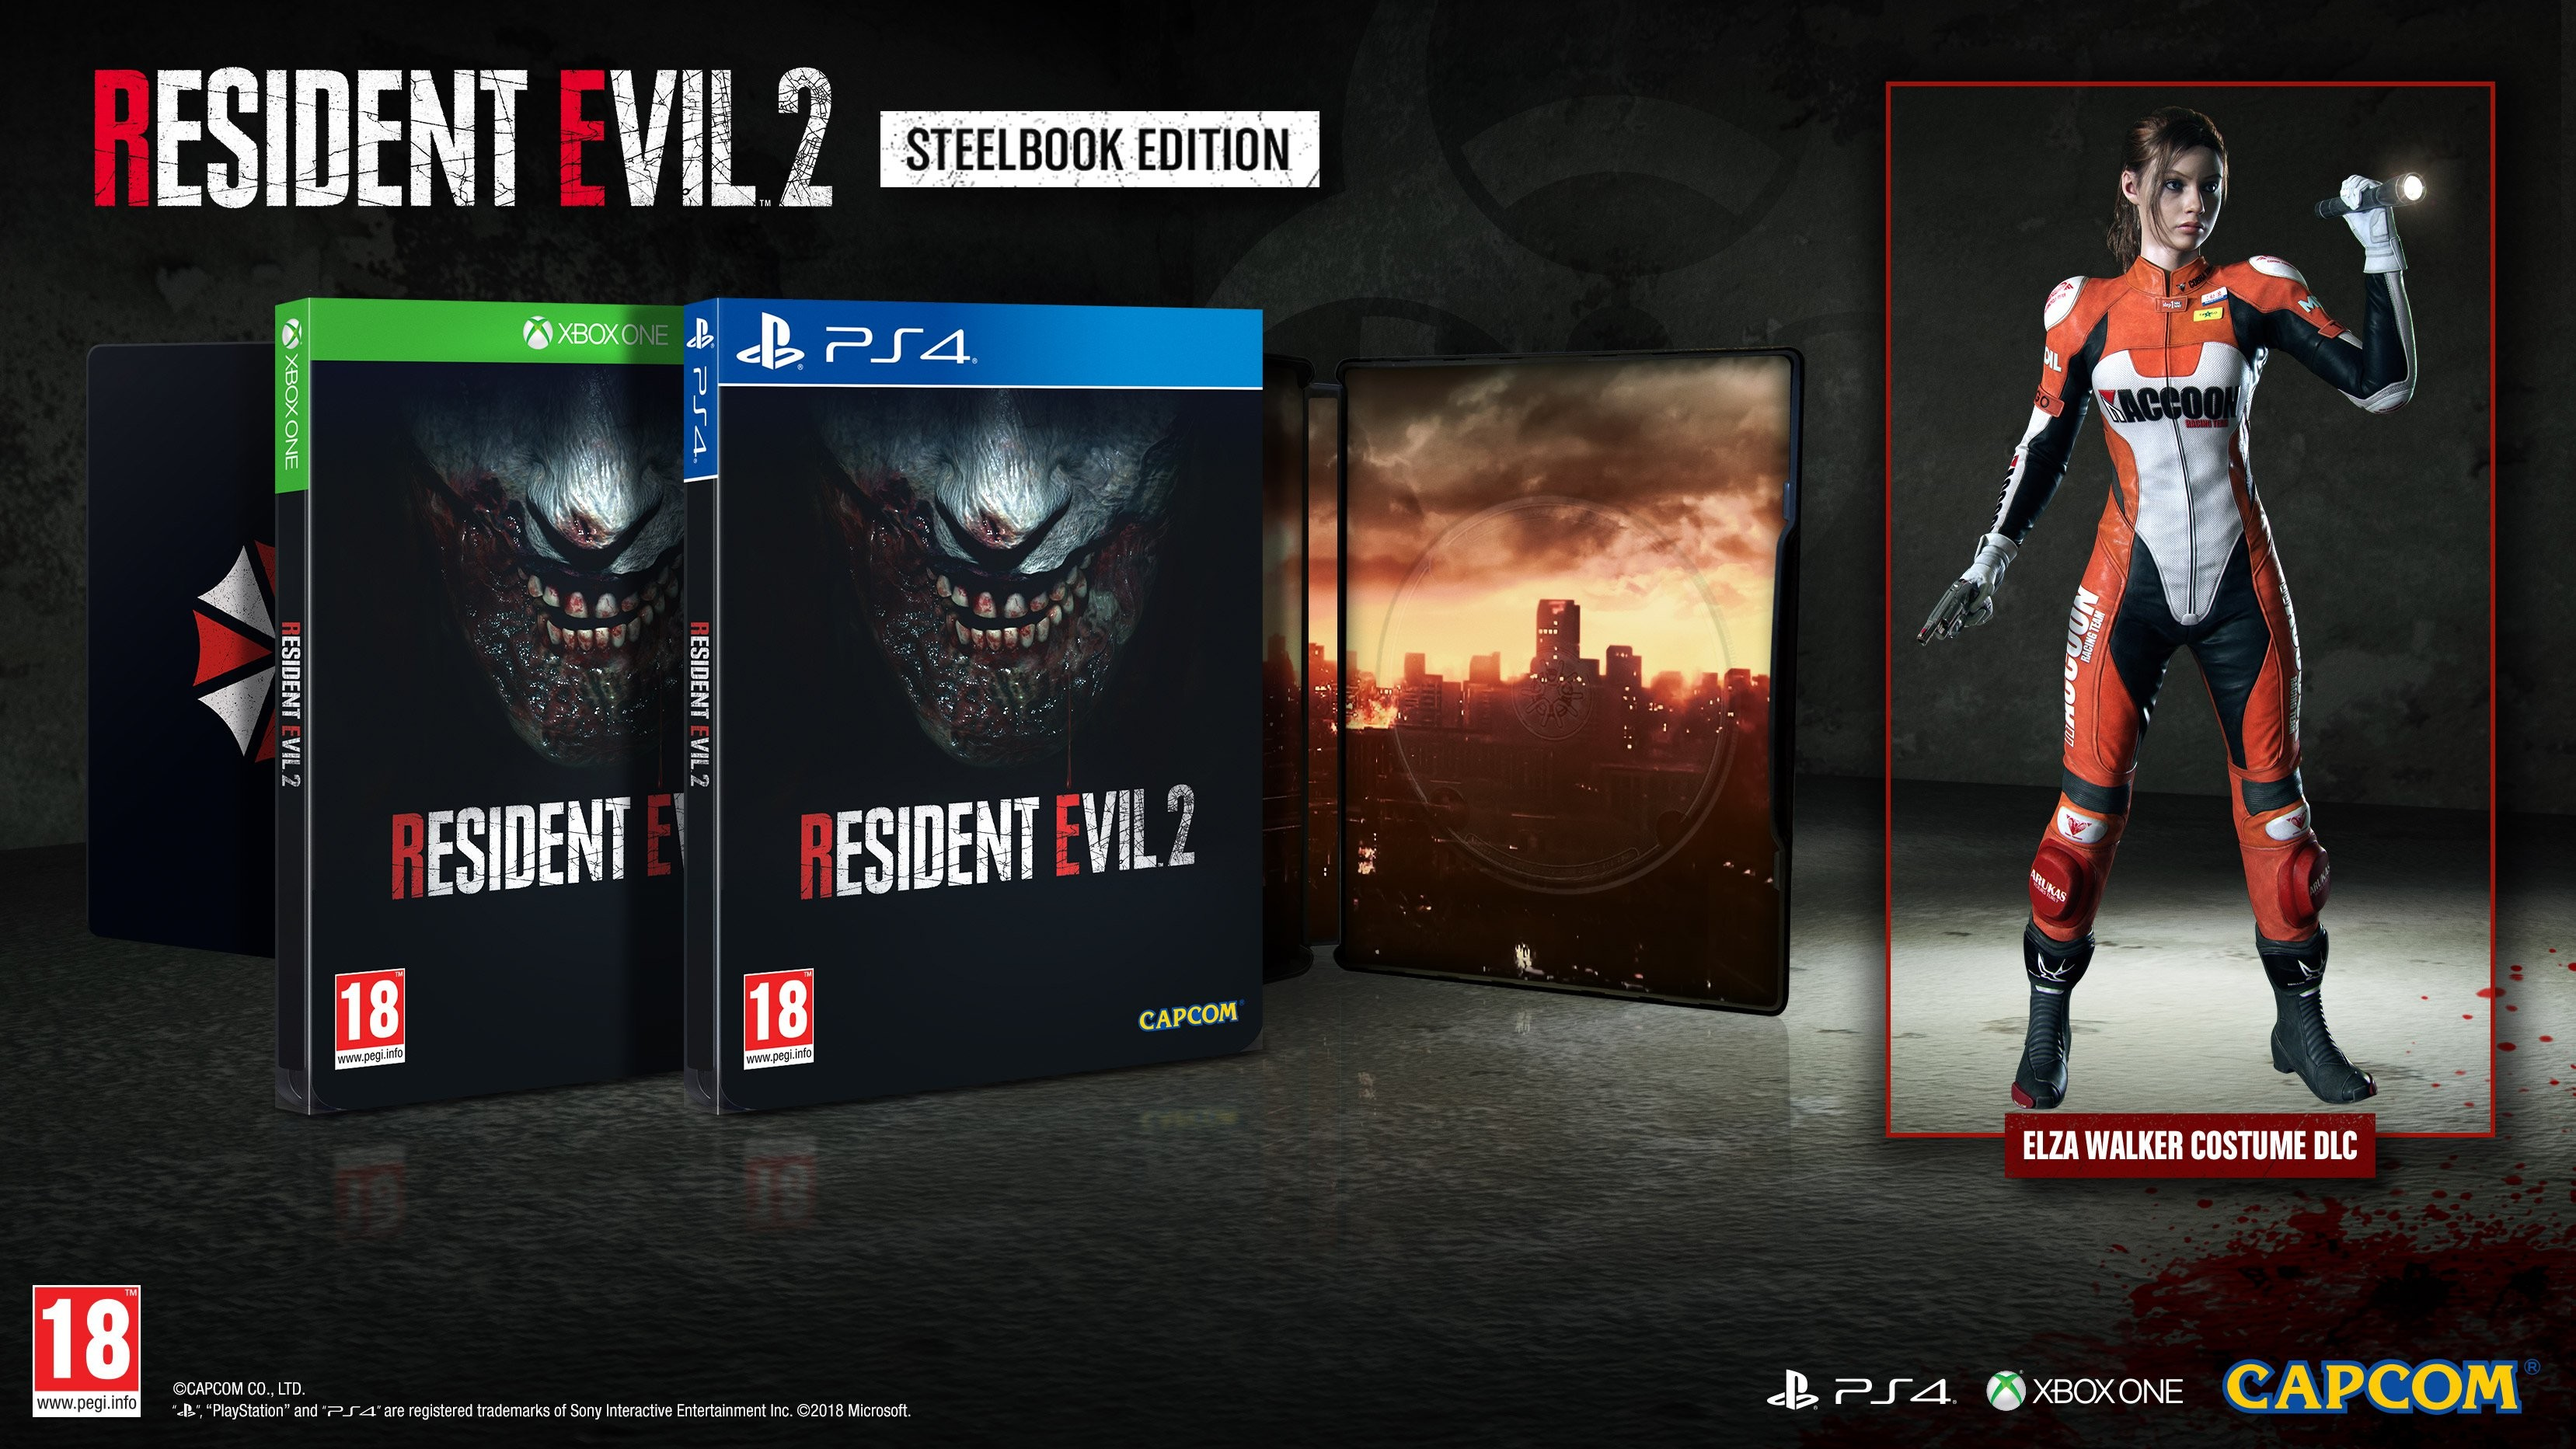 Buy Resident Evil 2 Remake Steelbook Edition, XBOX ONE